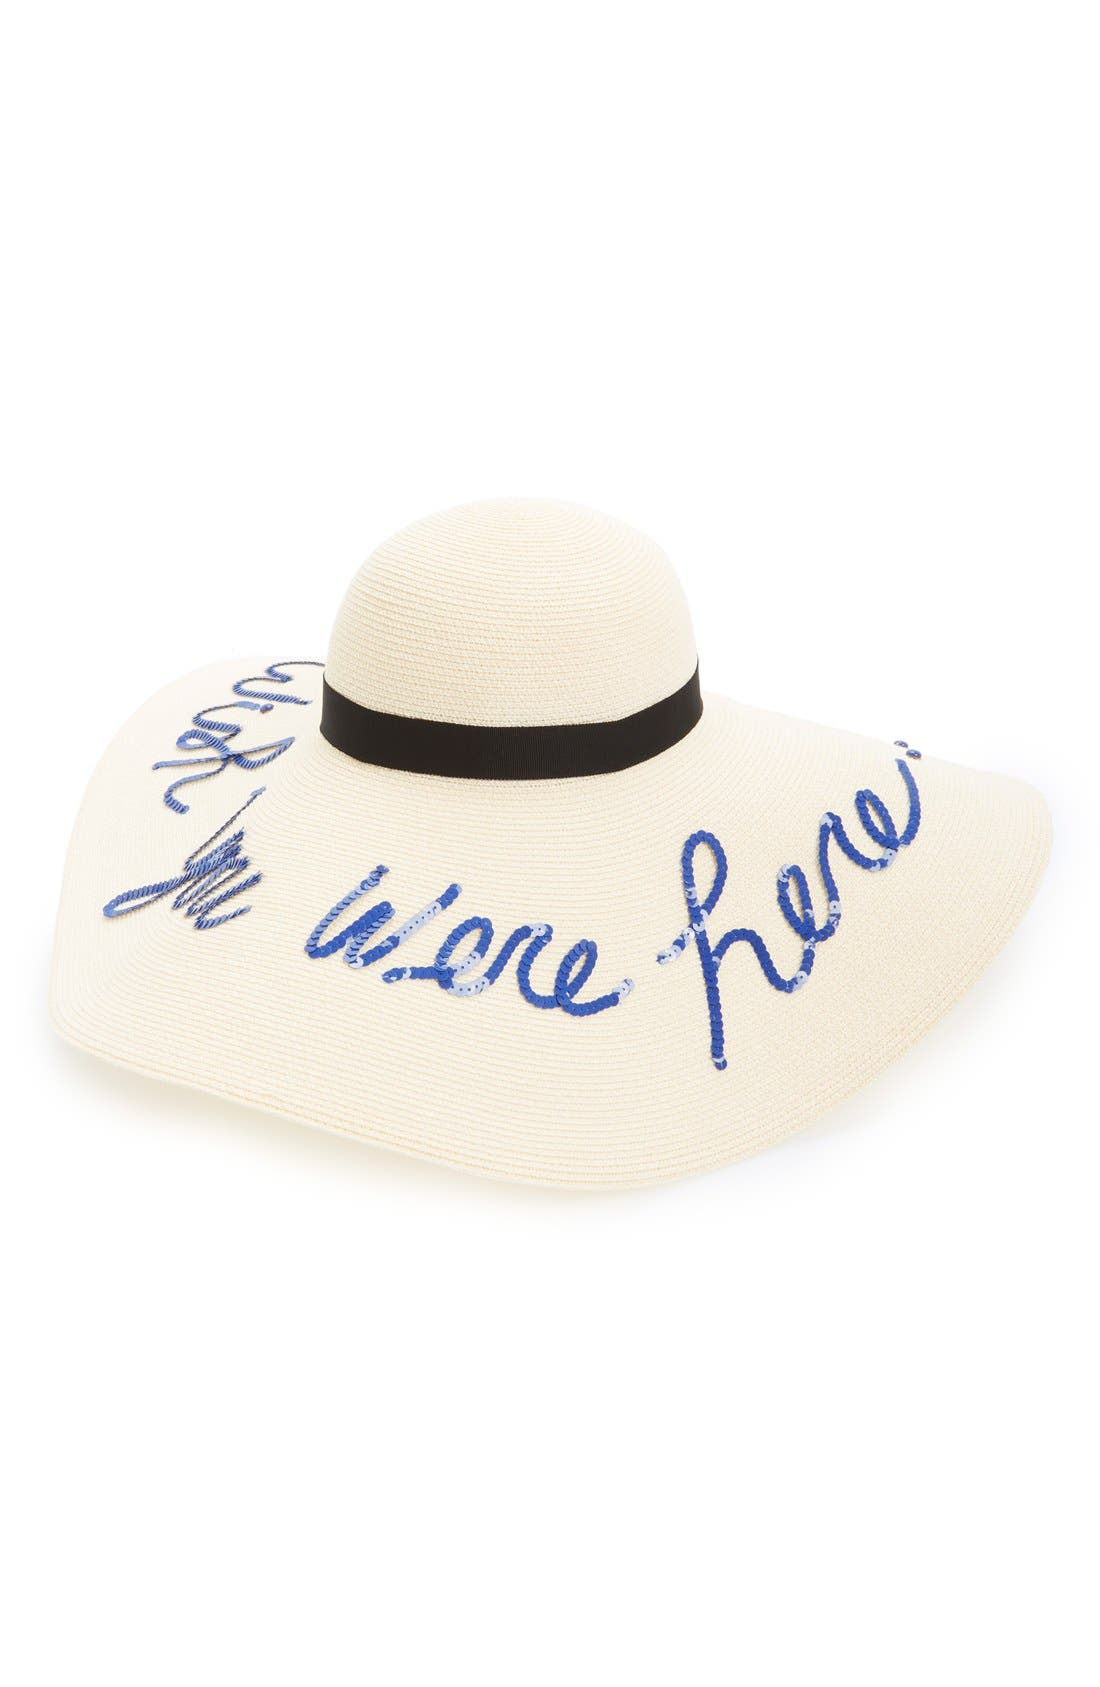 'Sunny - Wish You Were Here' Straw Sun Hat,                         Main,                         color, Ivory